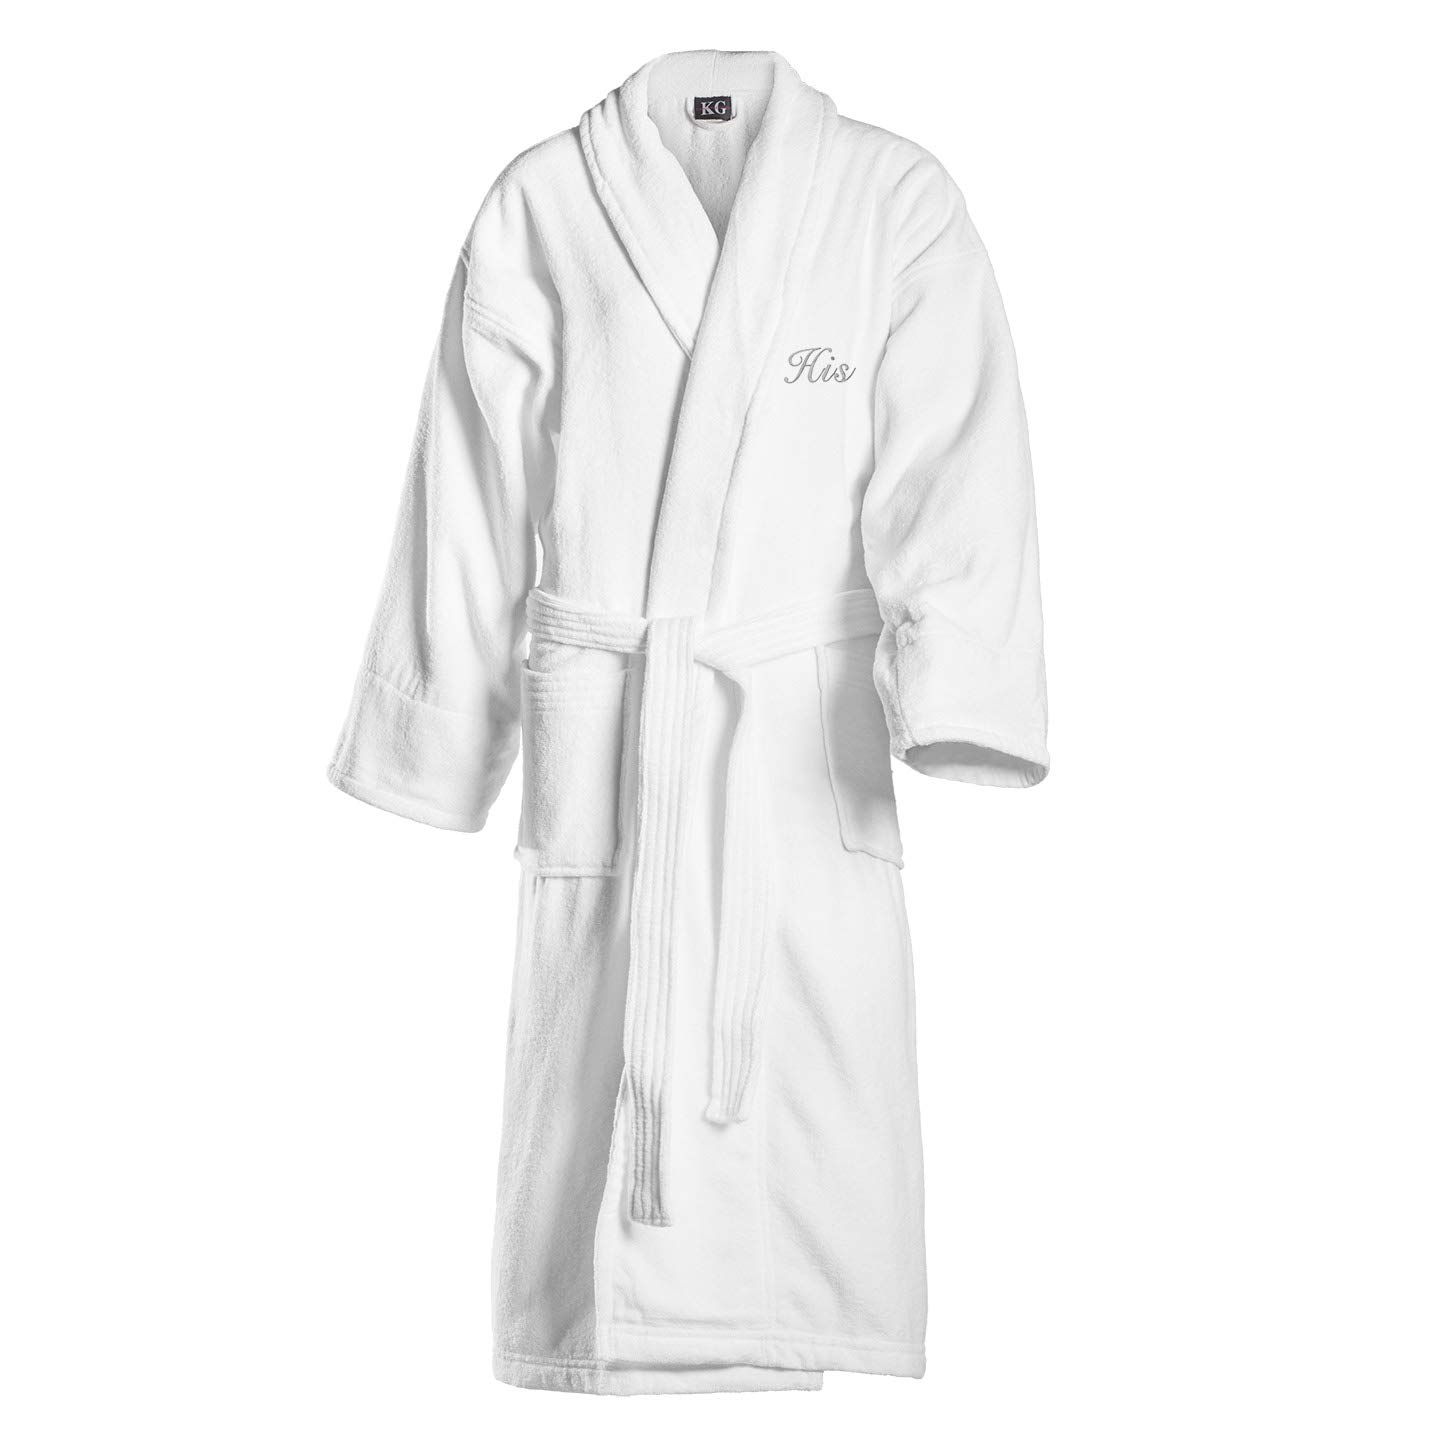 Kaufman - Terry Cloth Bathrobes 100% Cotton - His and Hers Embroidered Velour Shawl Set of Robes with His and Hers Black Towel Set 30''x58'' 4-PK by Ben Kaufman Sales (Image #2)